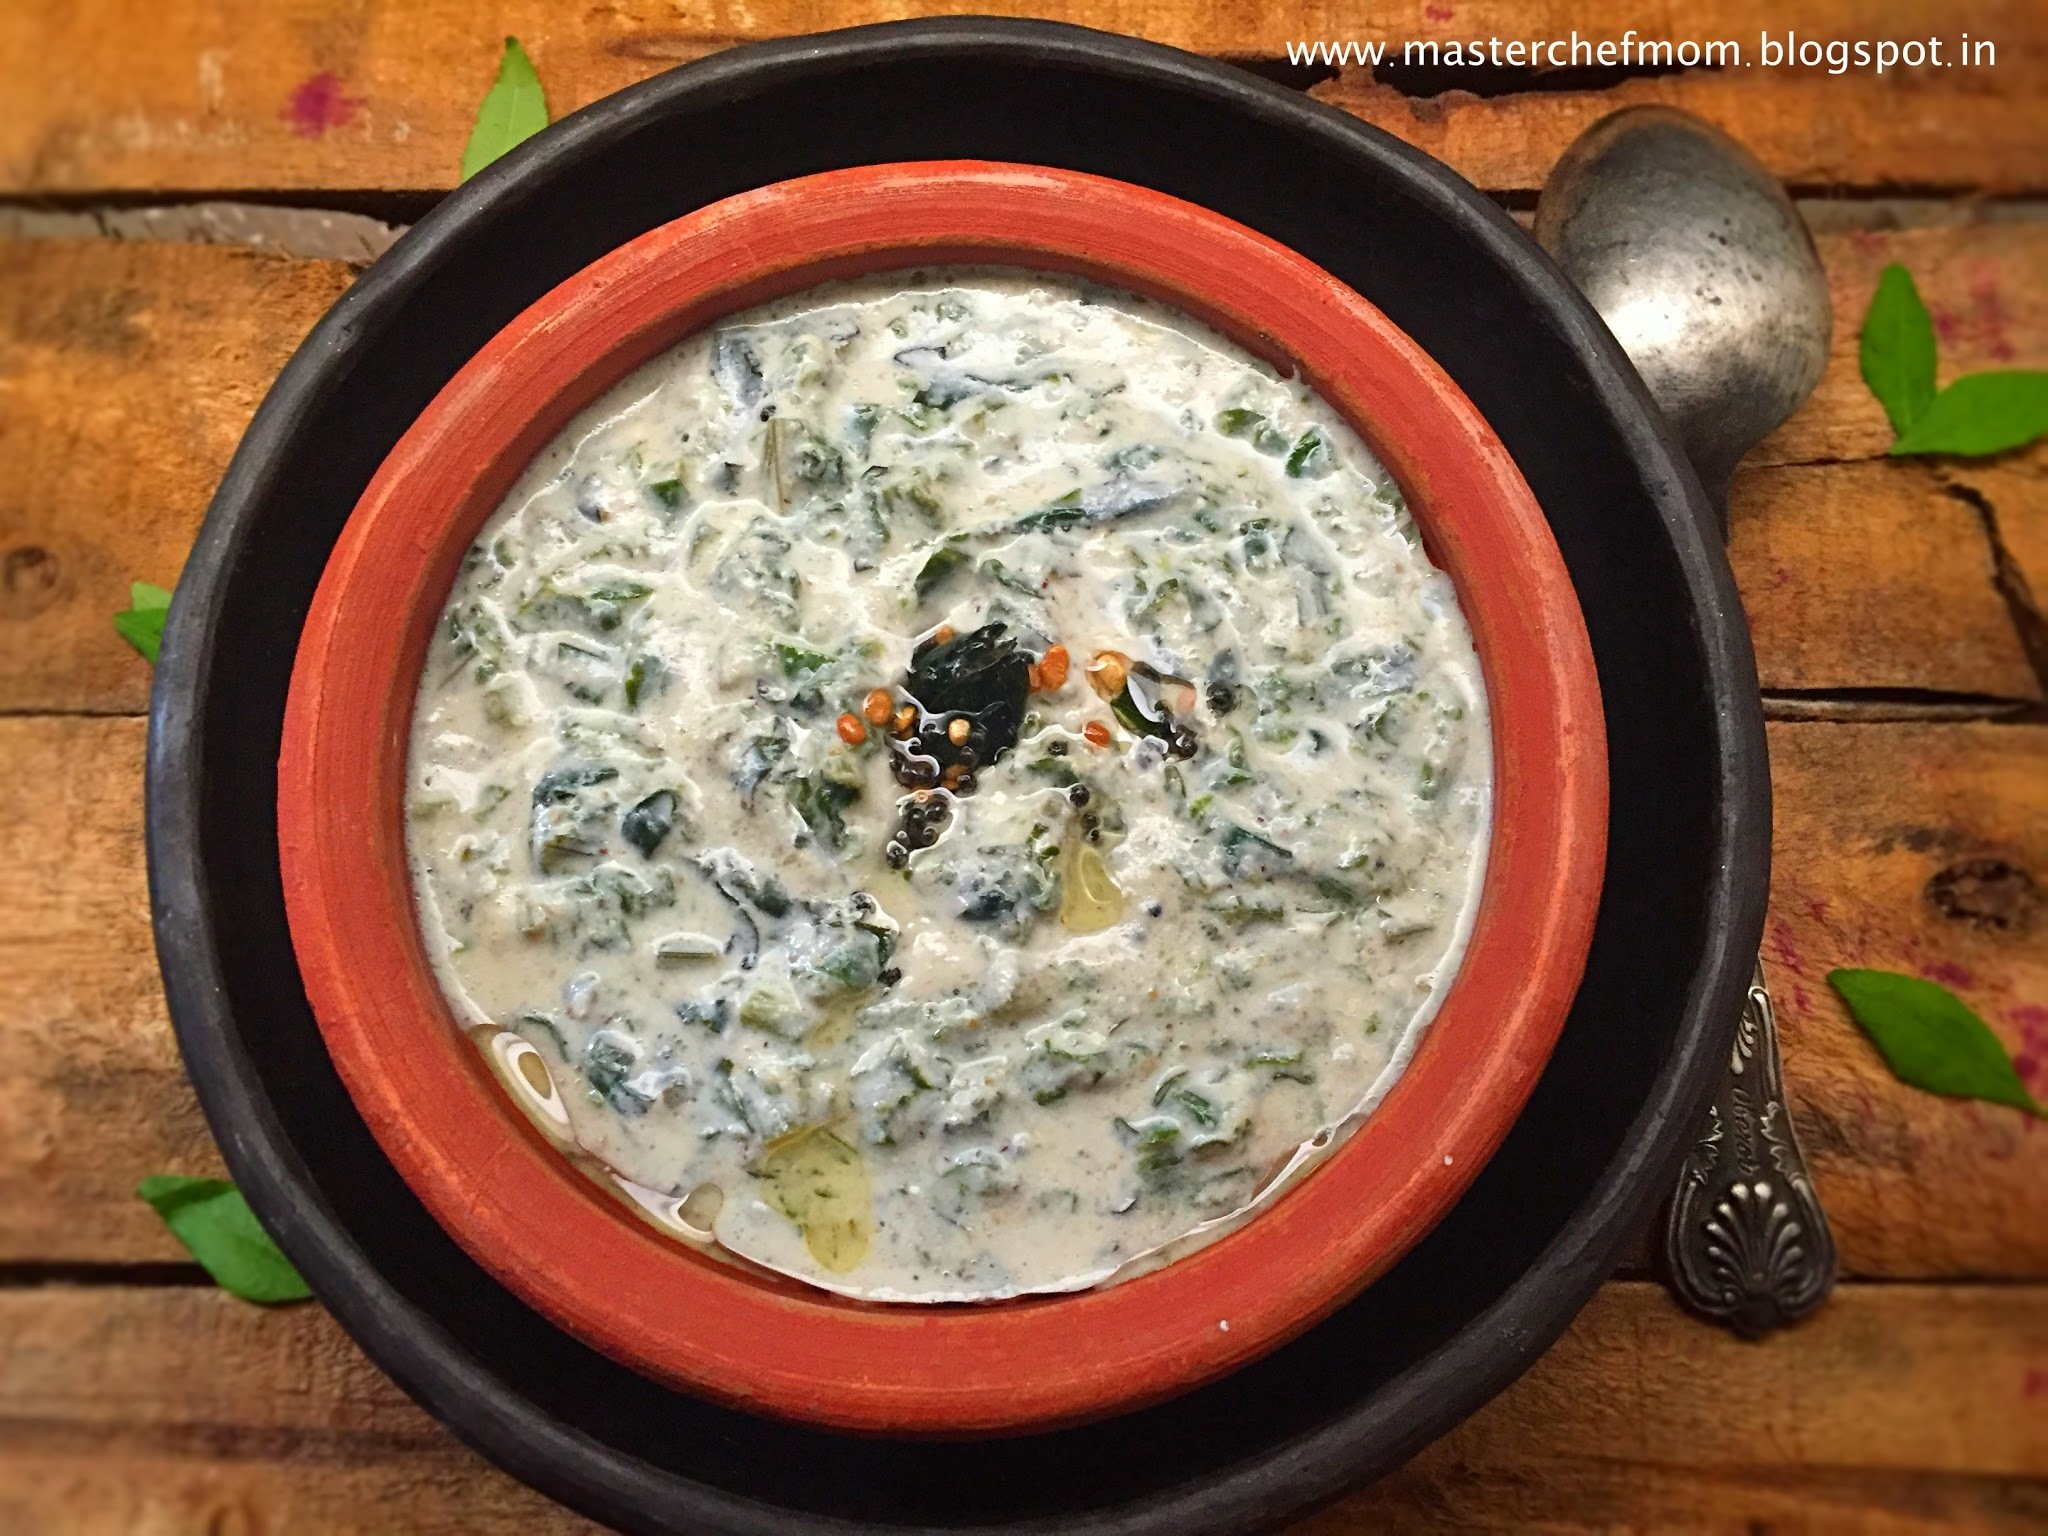 Keerai Thayir Pachadi | Chettinad Style Keerai Pachadi |Spinach Raita | Authentic Recipe | Quick and Easy Side dish | Stepwise Pictures